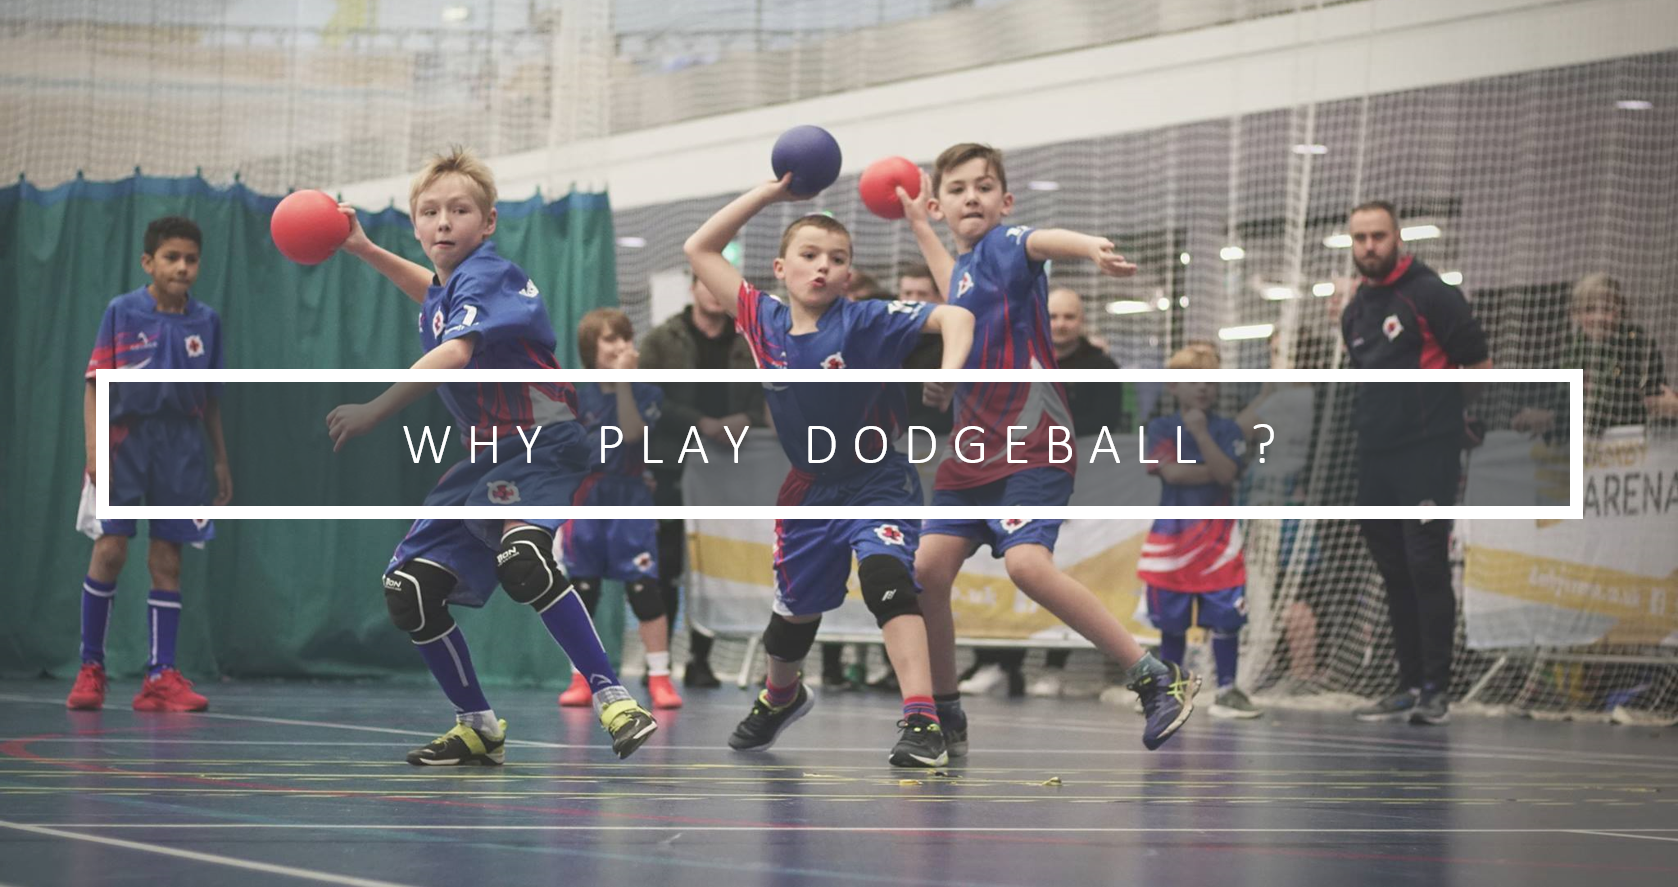 Why Play Dodgeball